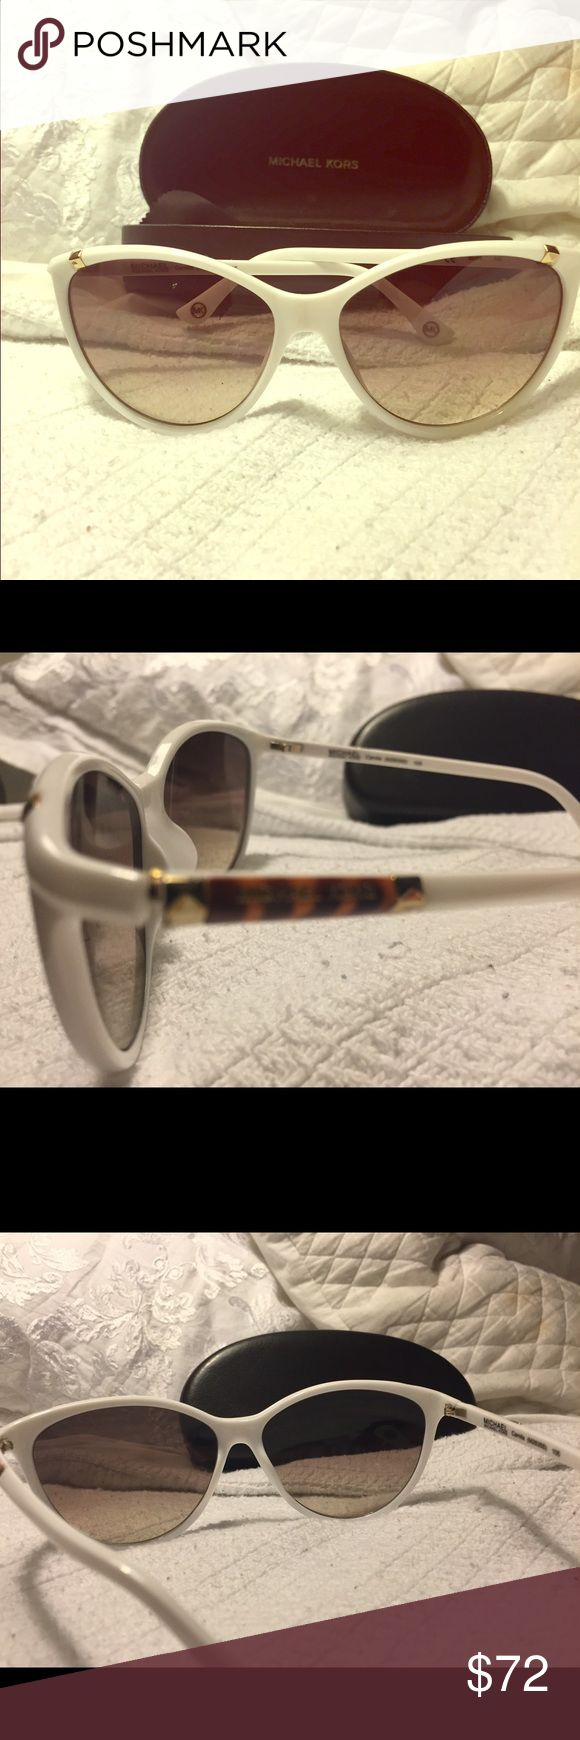 Michael Kors Camila Sunglasses- white Michael Kors Sunglasses are an oversize plastic cat-eye with metal pyramid detailing on the top of the frame and on the temples. The Michael Kors logo is engraved on the temples. Color- white with gold - never worn. Comes with case and cleaning cloth MICHAEL Michael Kors Accessories Sunglasses